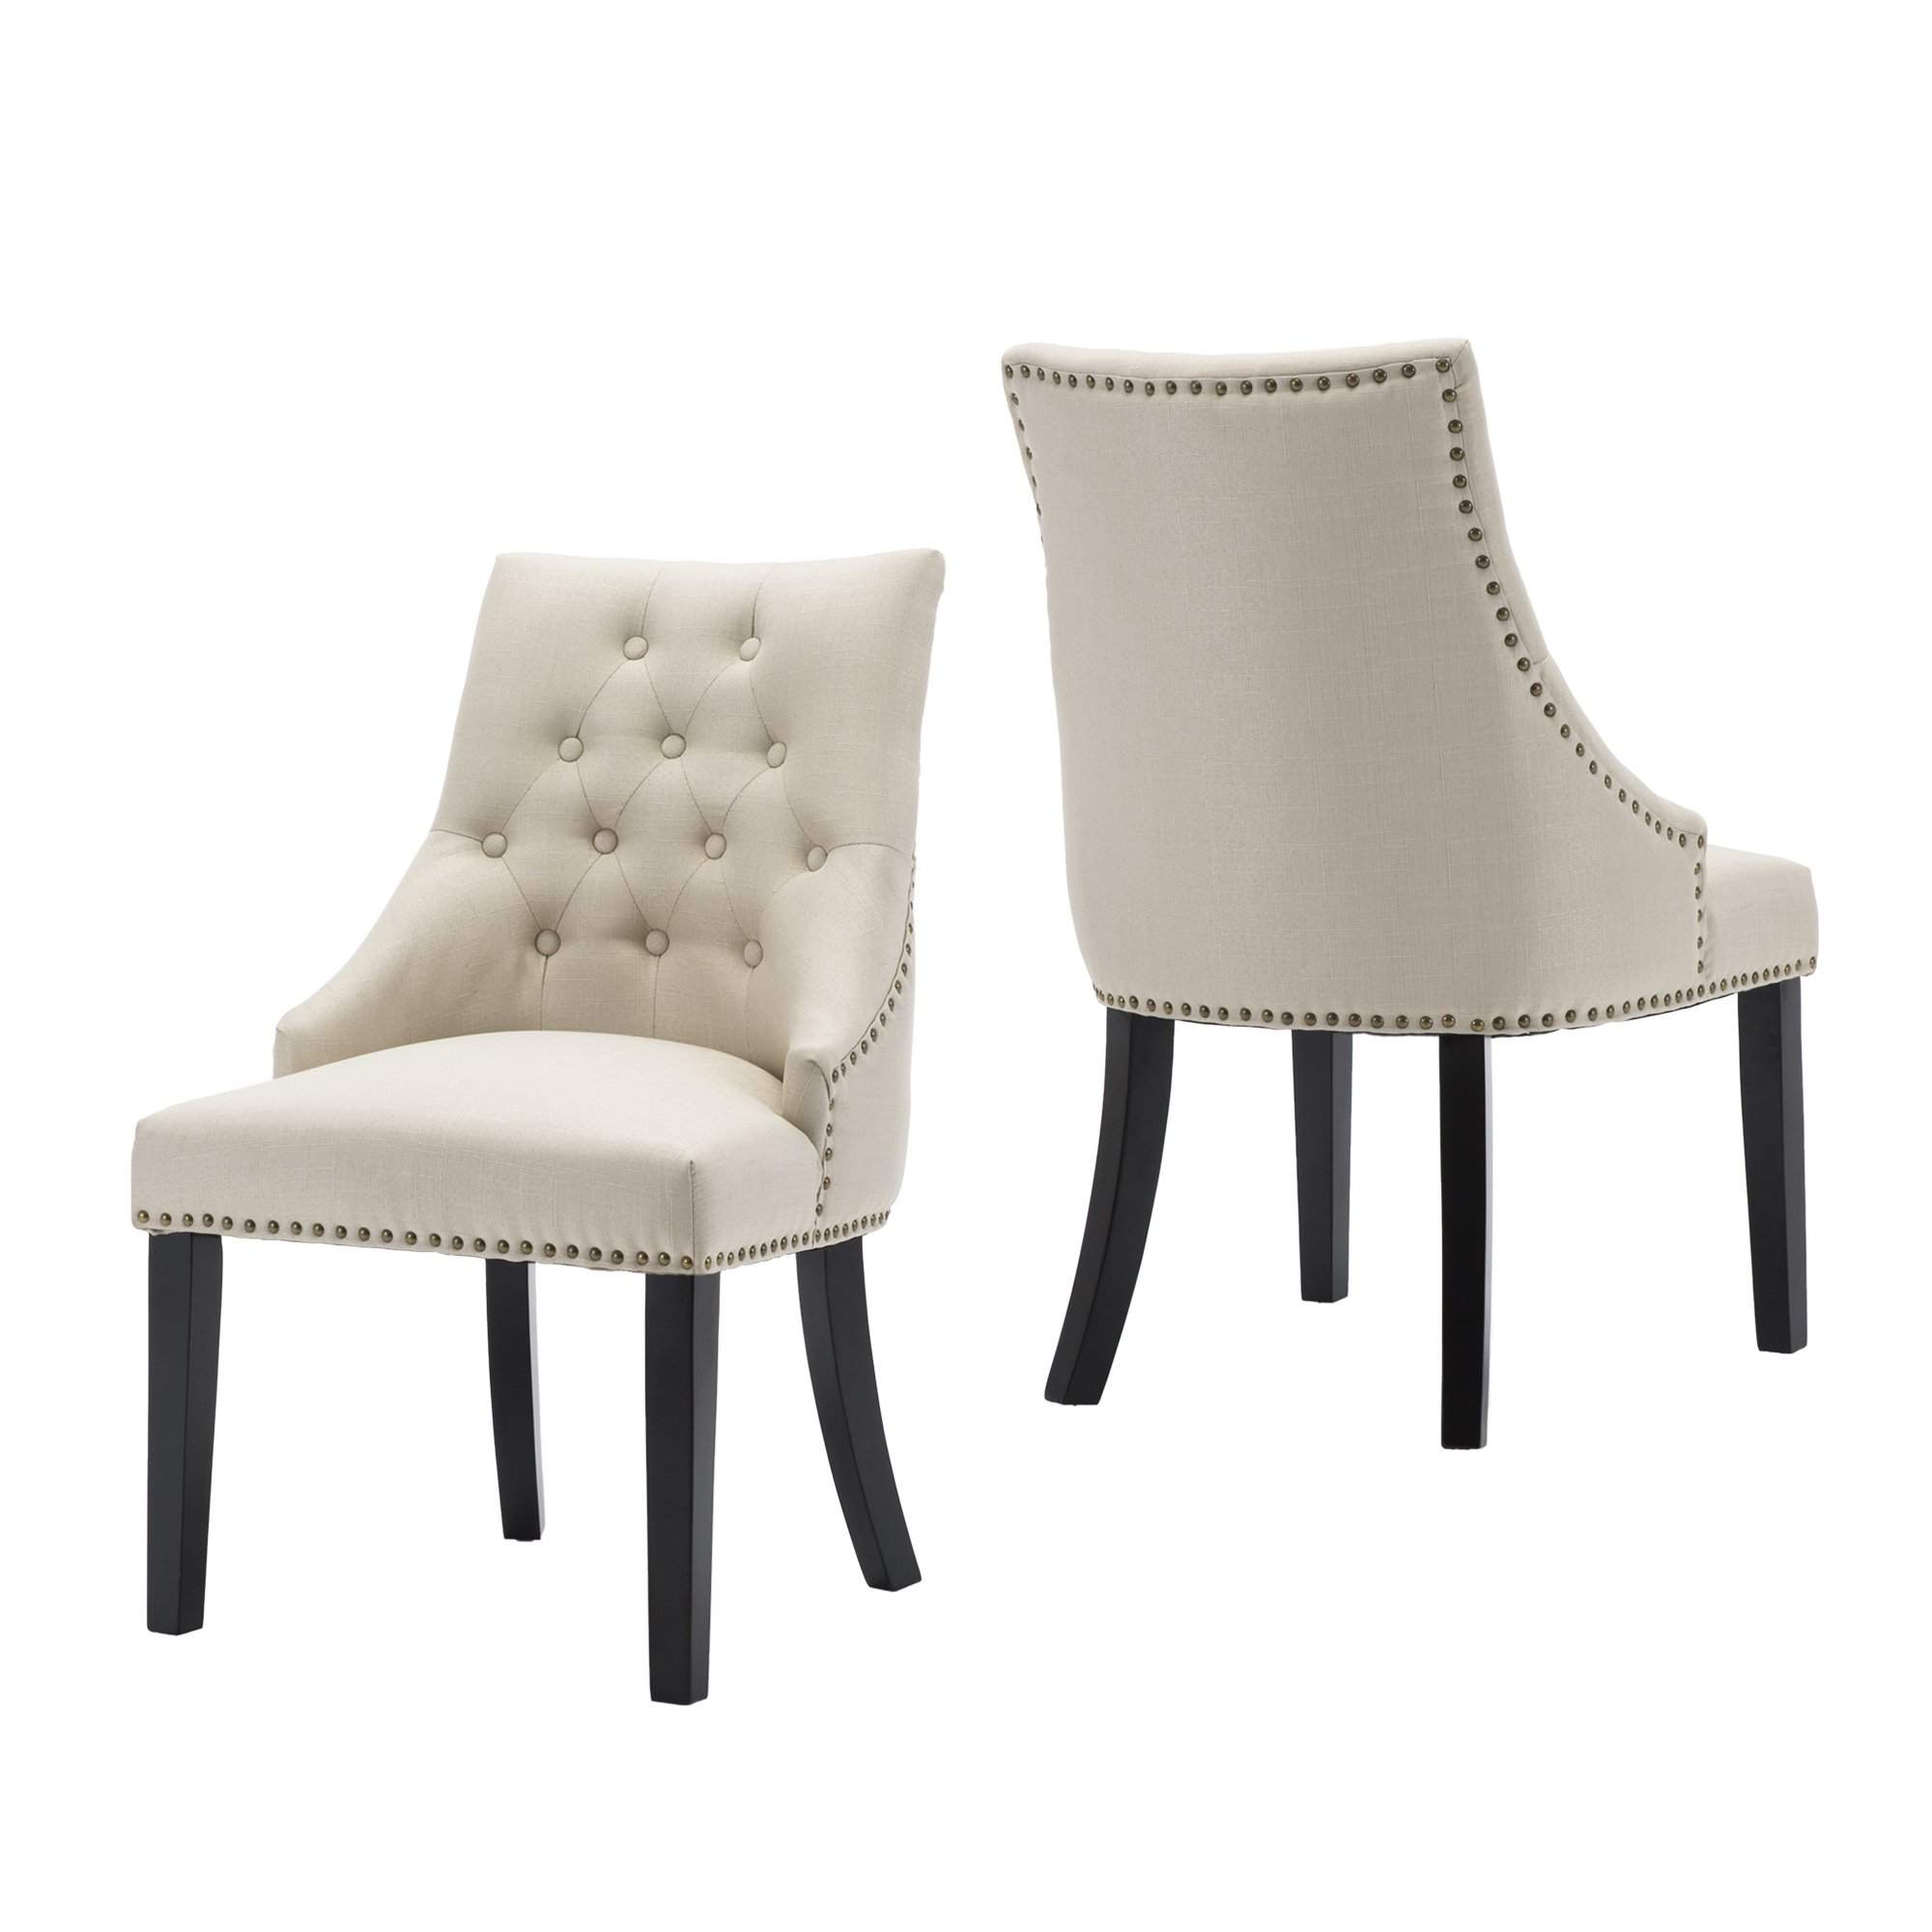 Chair Clearance Dining Room – Chair Pads & Cushions